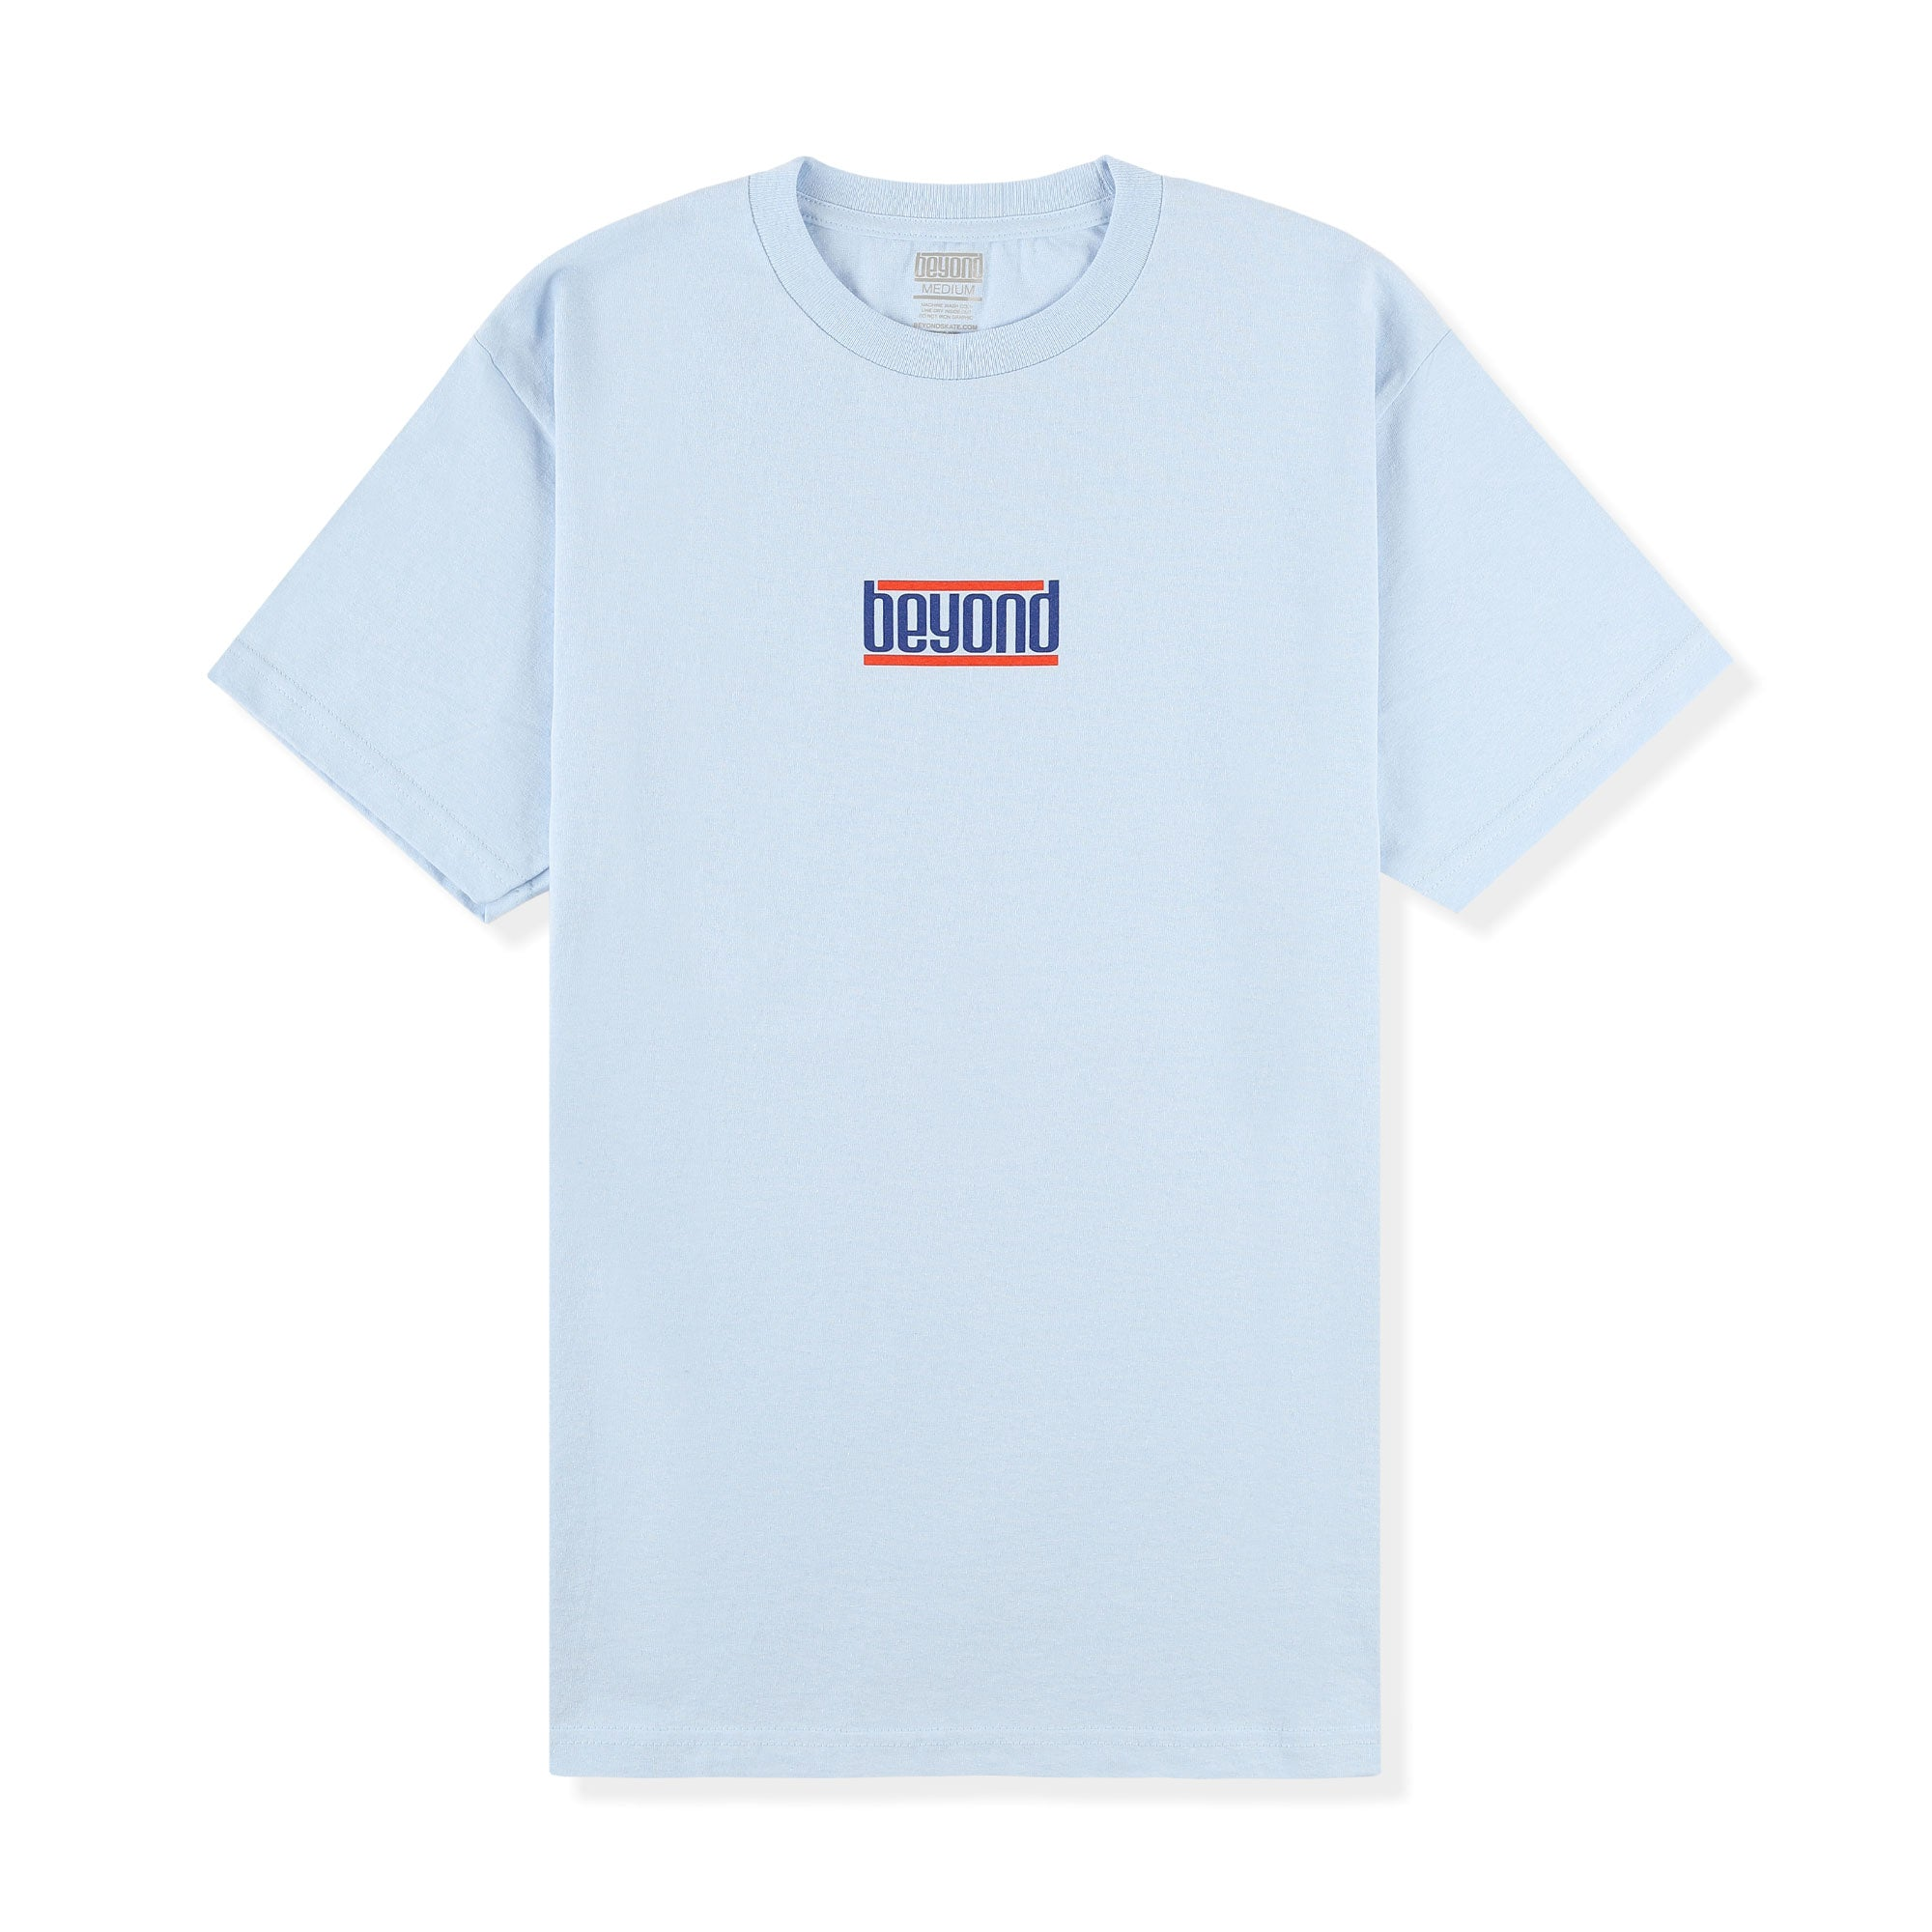 Beyond Variety II Tee Product Photo #1